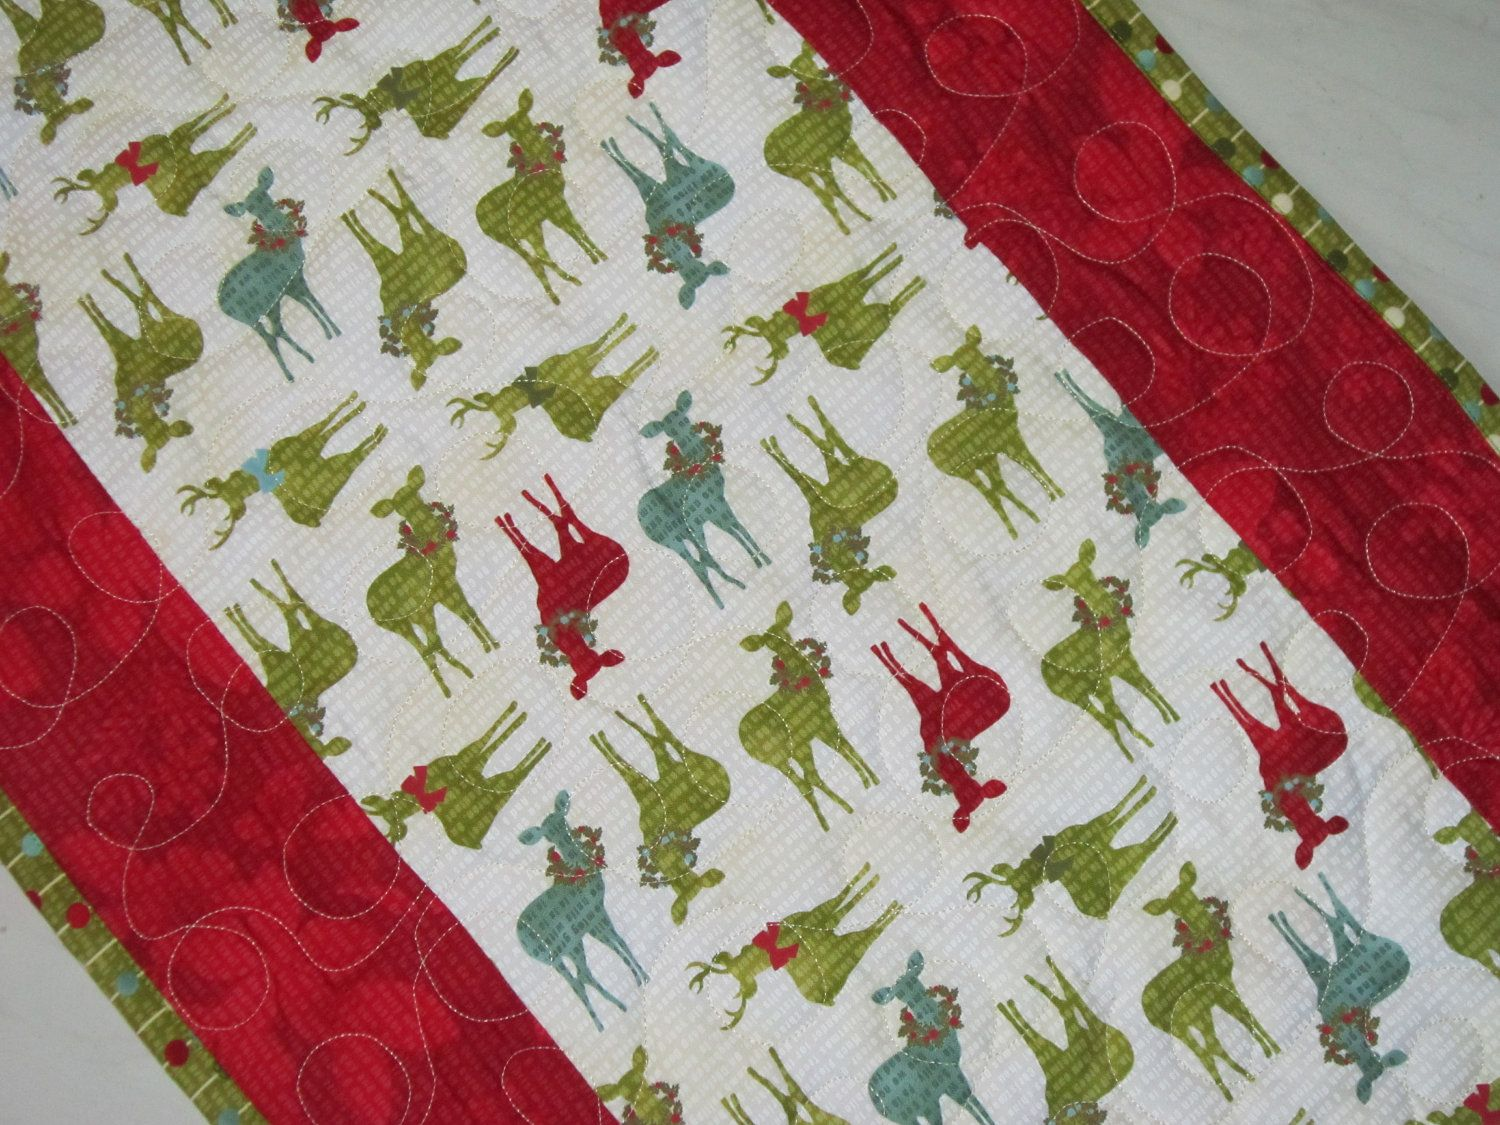 Christmas Table Runner Quilted Modern Reindeer Table Linens ... : quilted table linens - Adamdwight.com